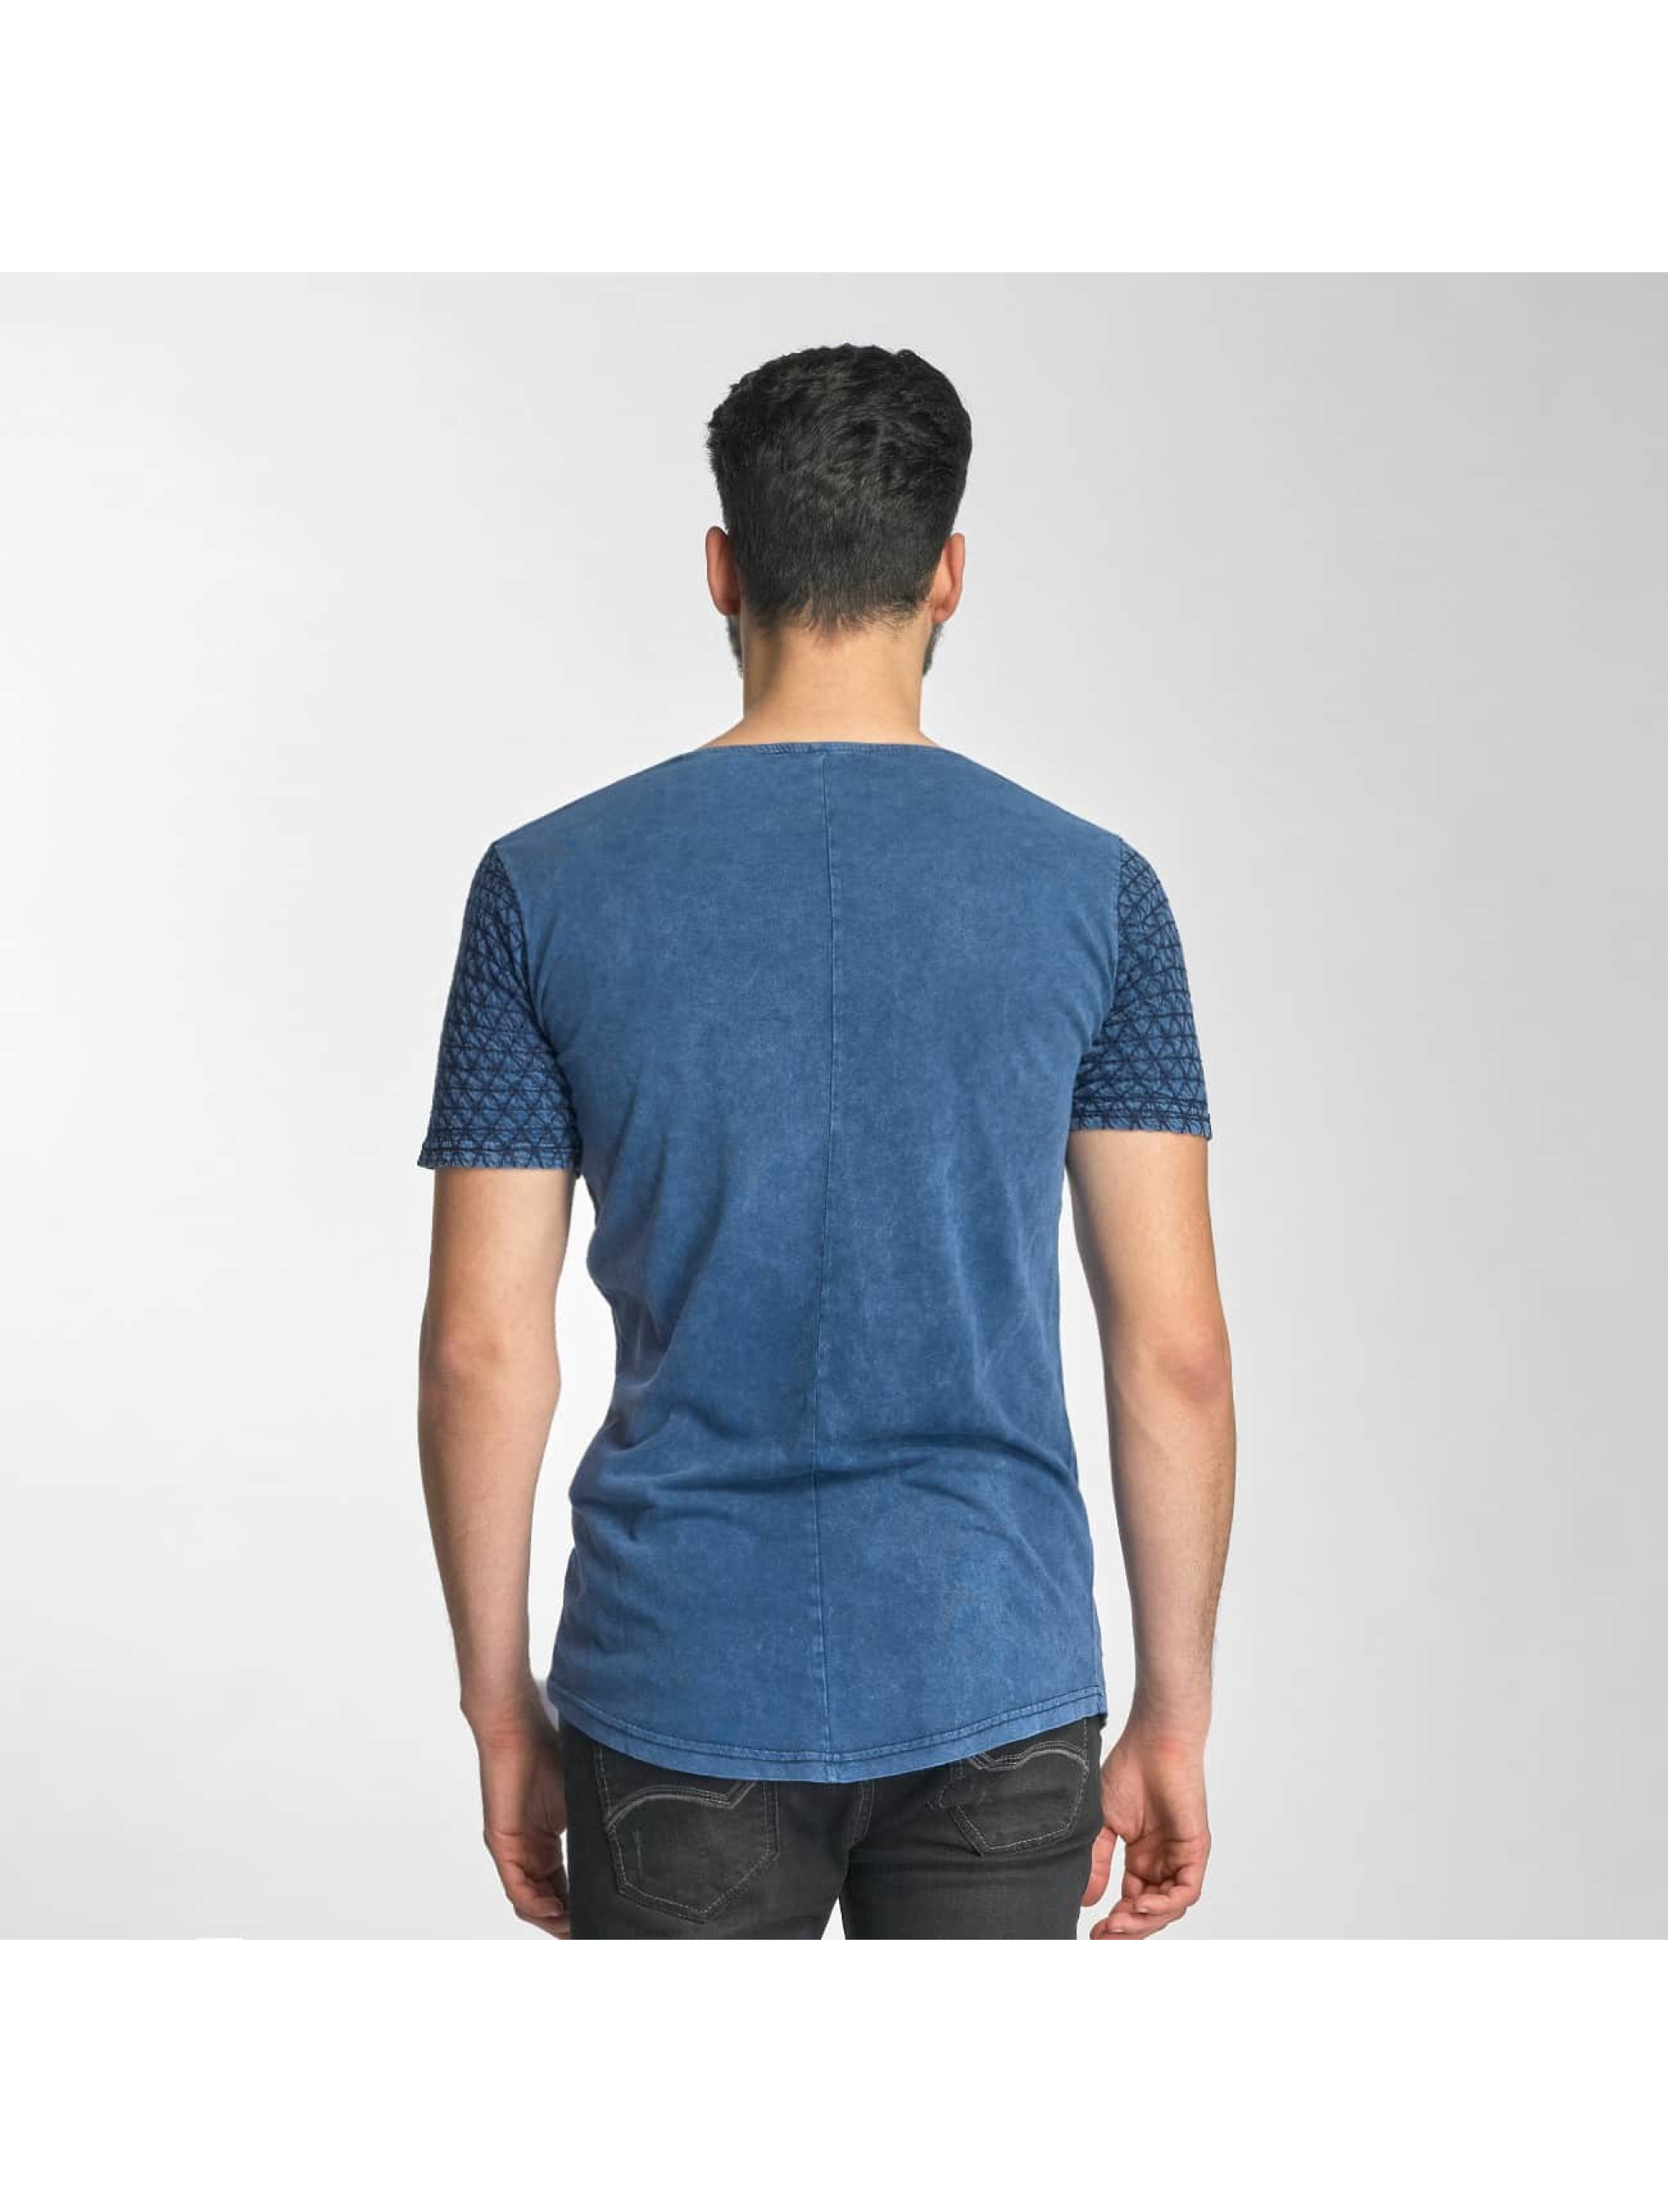 Red Bridge Tall Tees Ribo indigo